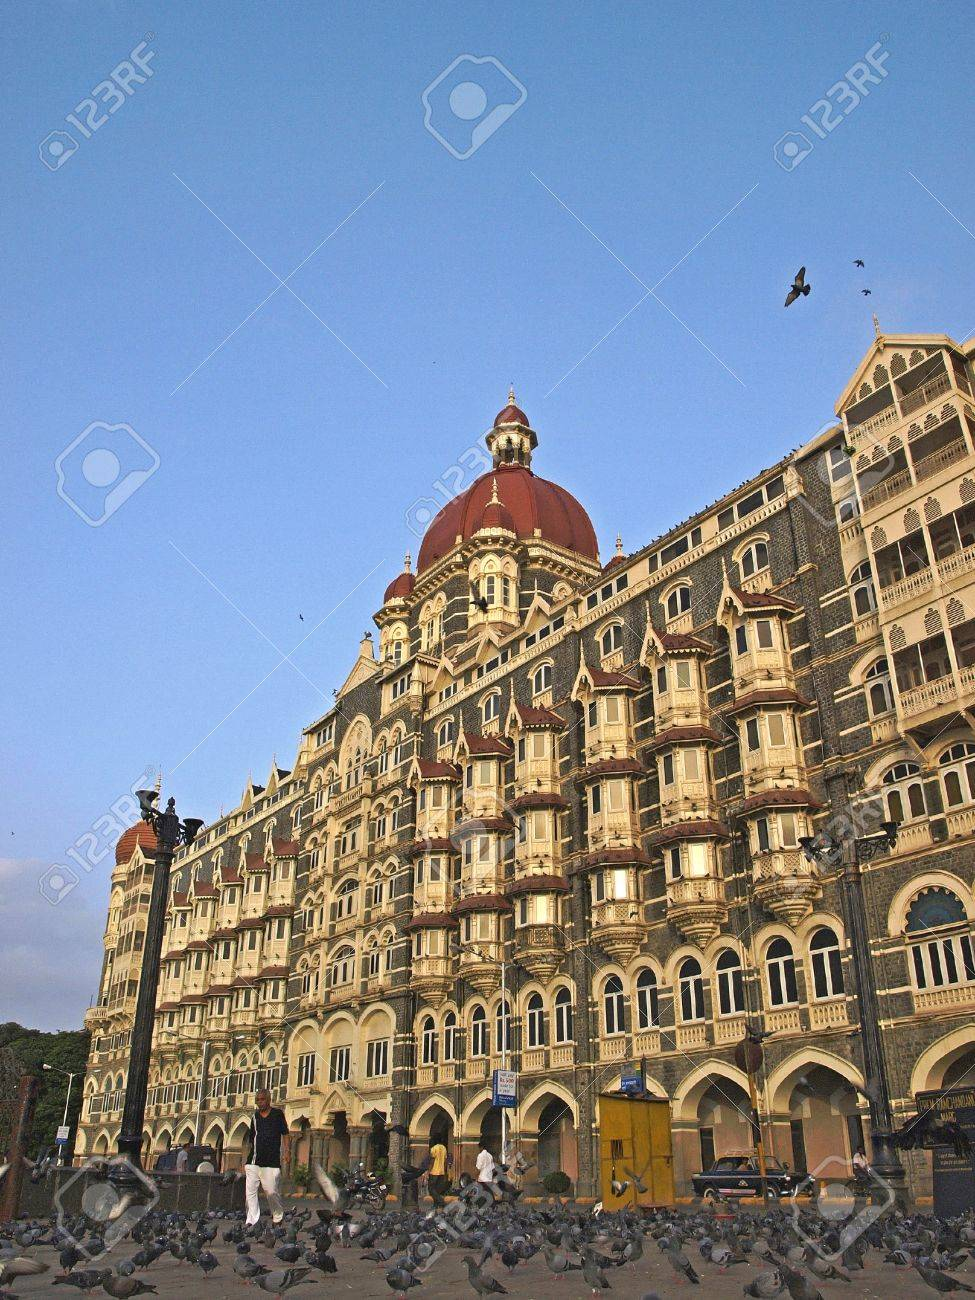 MUMBAI, INDIA - JULY 18, 2008: Crowding of pigeons are stepping in front of the Taj Hotel, a renown hotel that was designed by Indian architect; Sitaram Khanderao Vaidya in Mumbai, India.       Stock Photo - 17227991